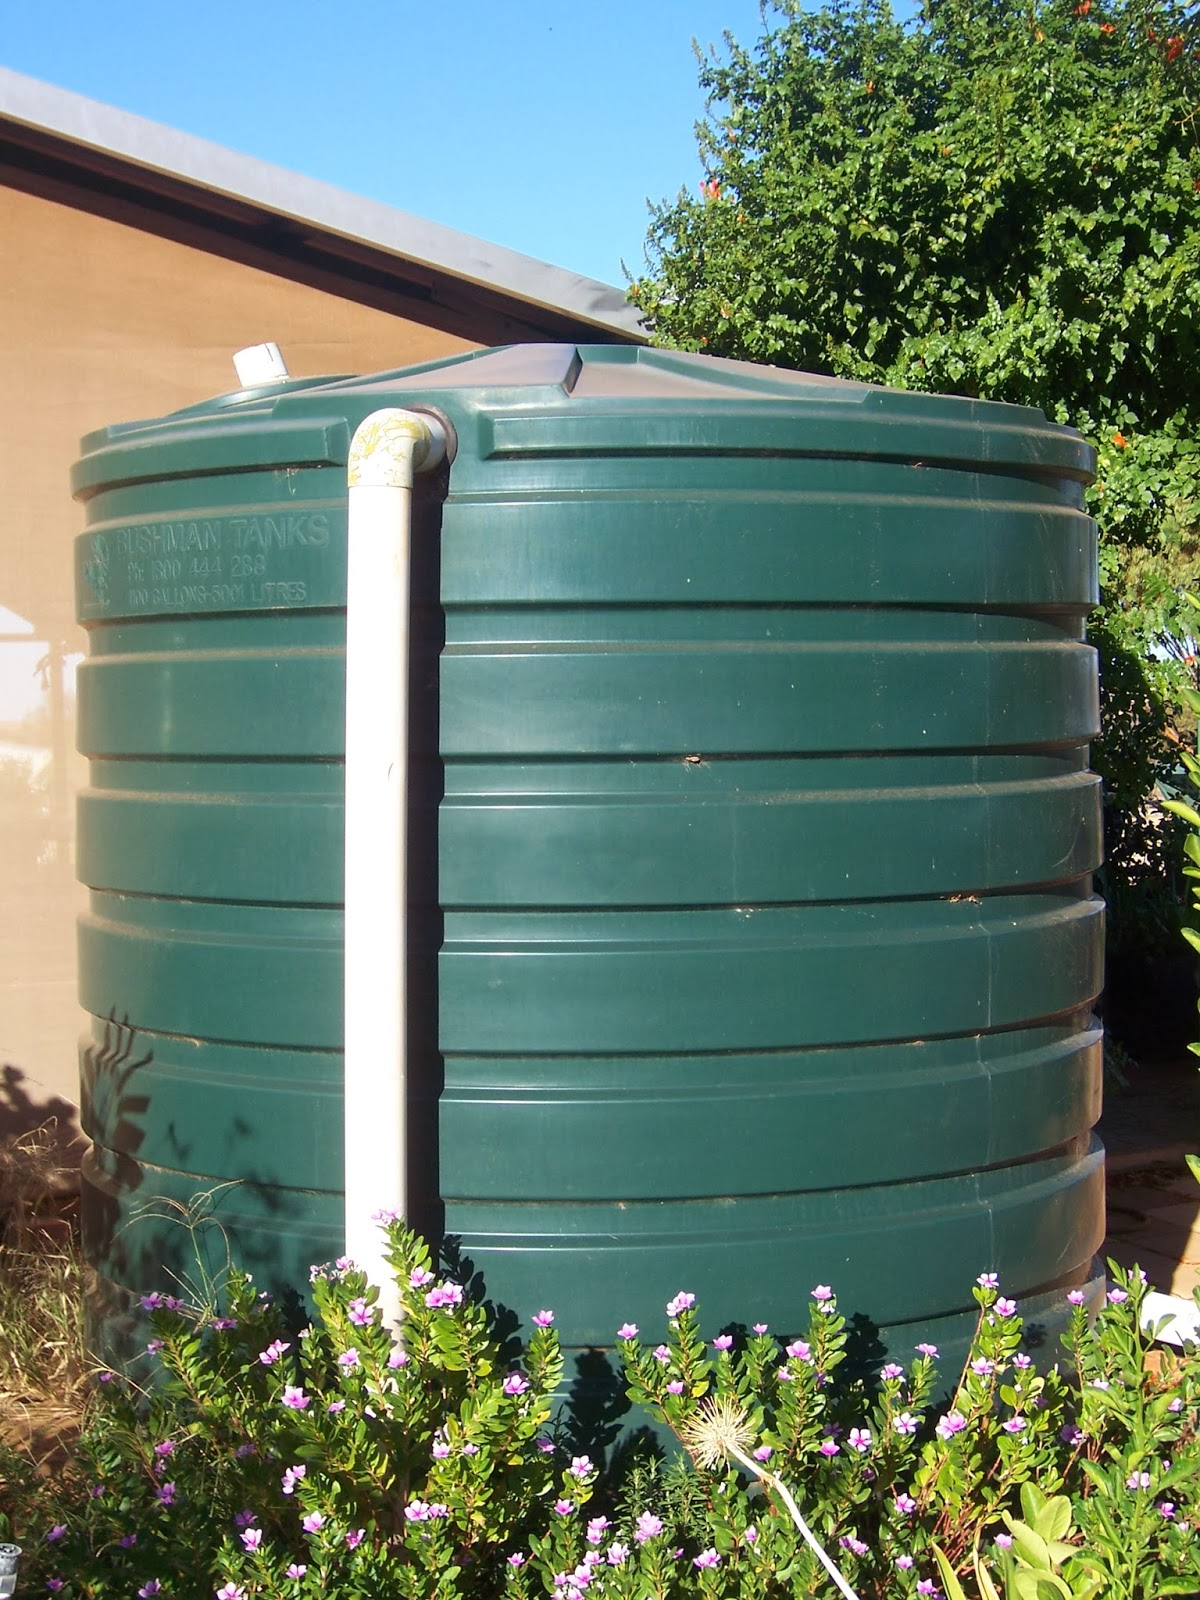 Pretending to Farm: How to Manage a Rain Water Tank